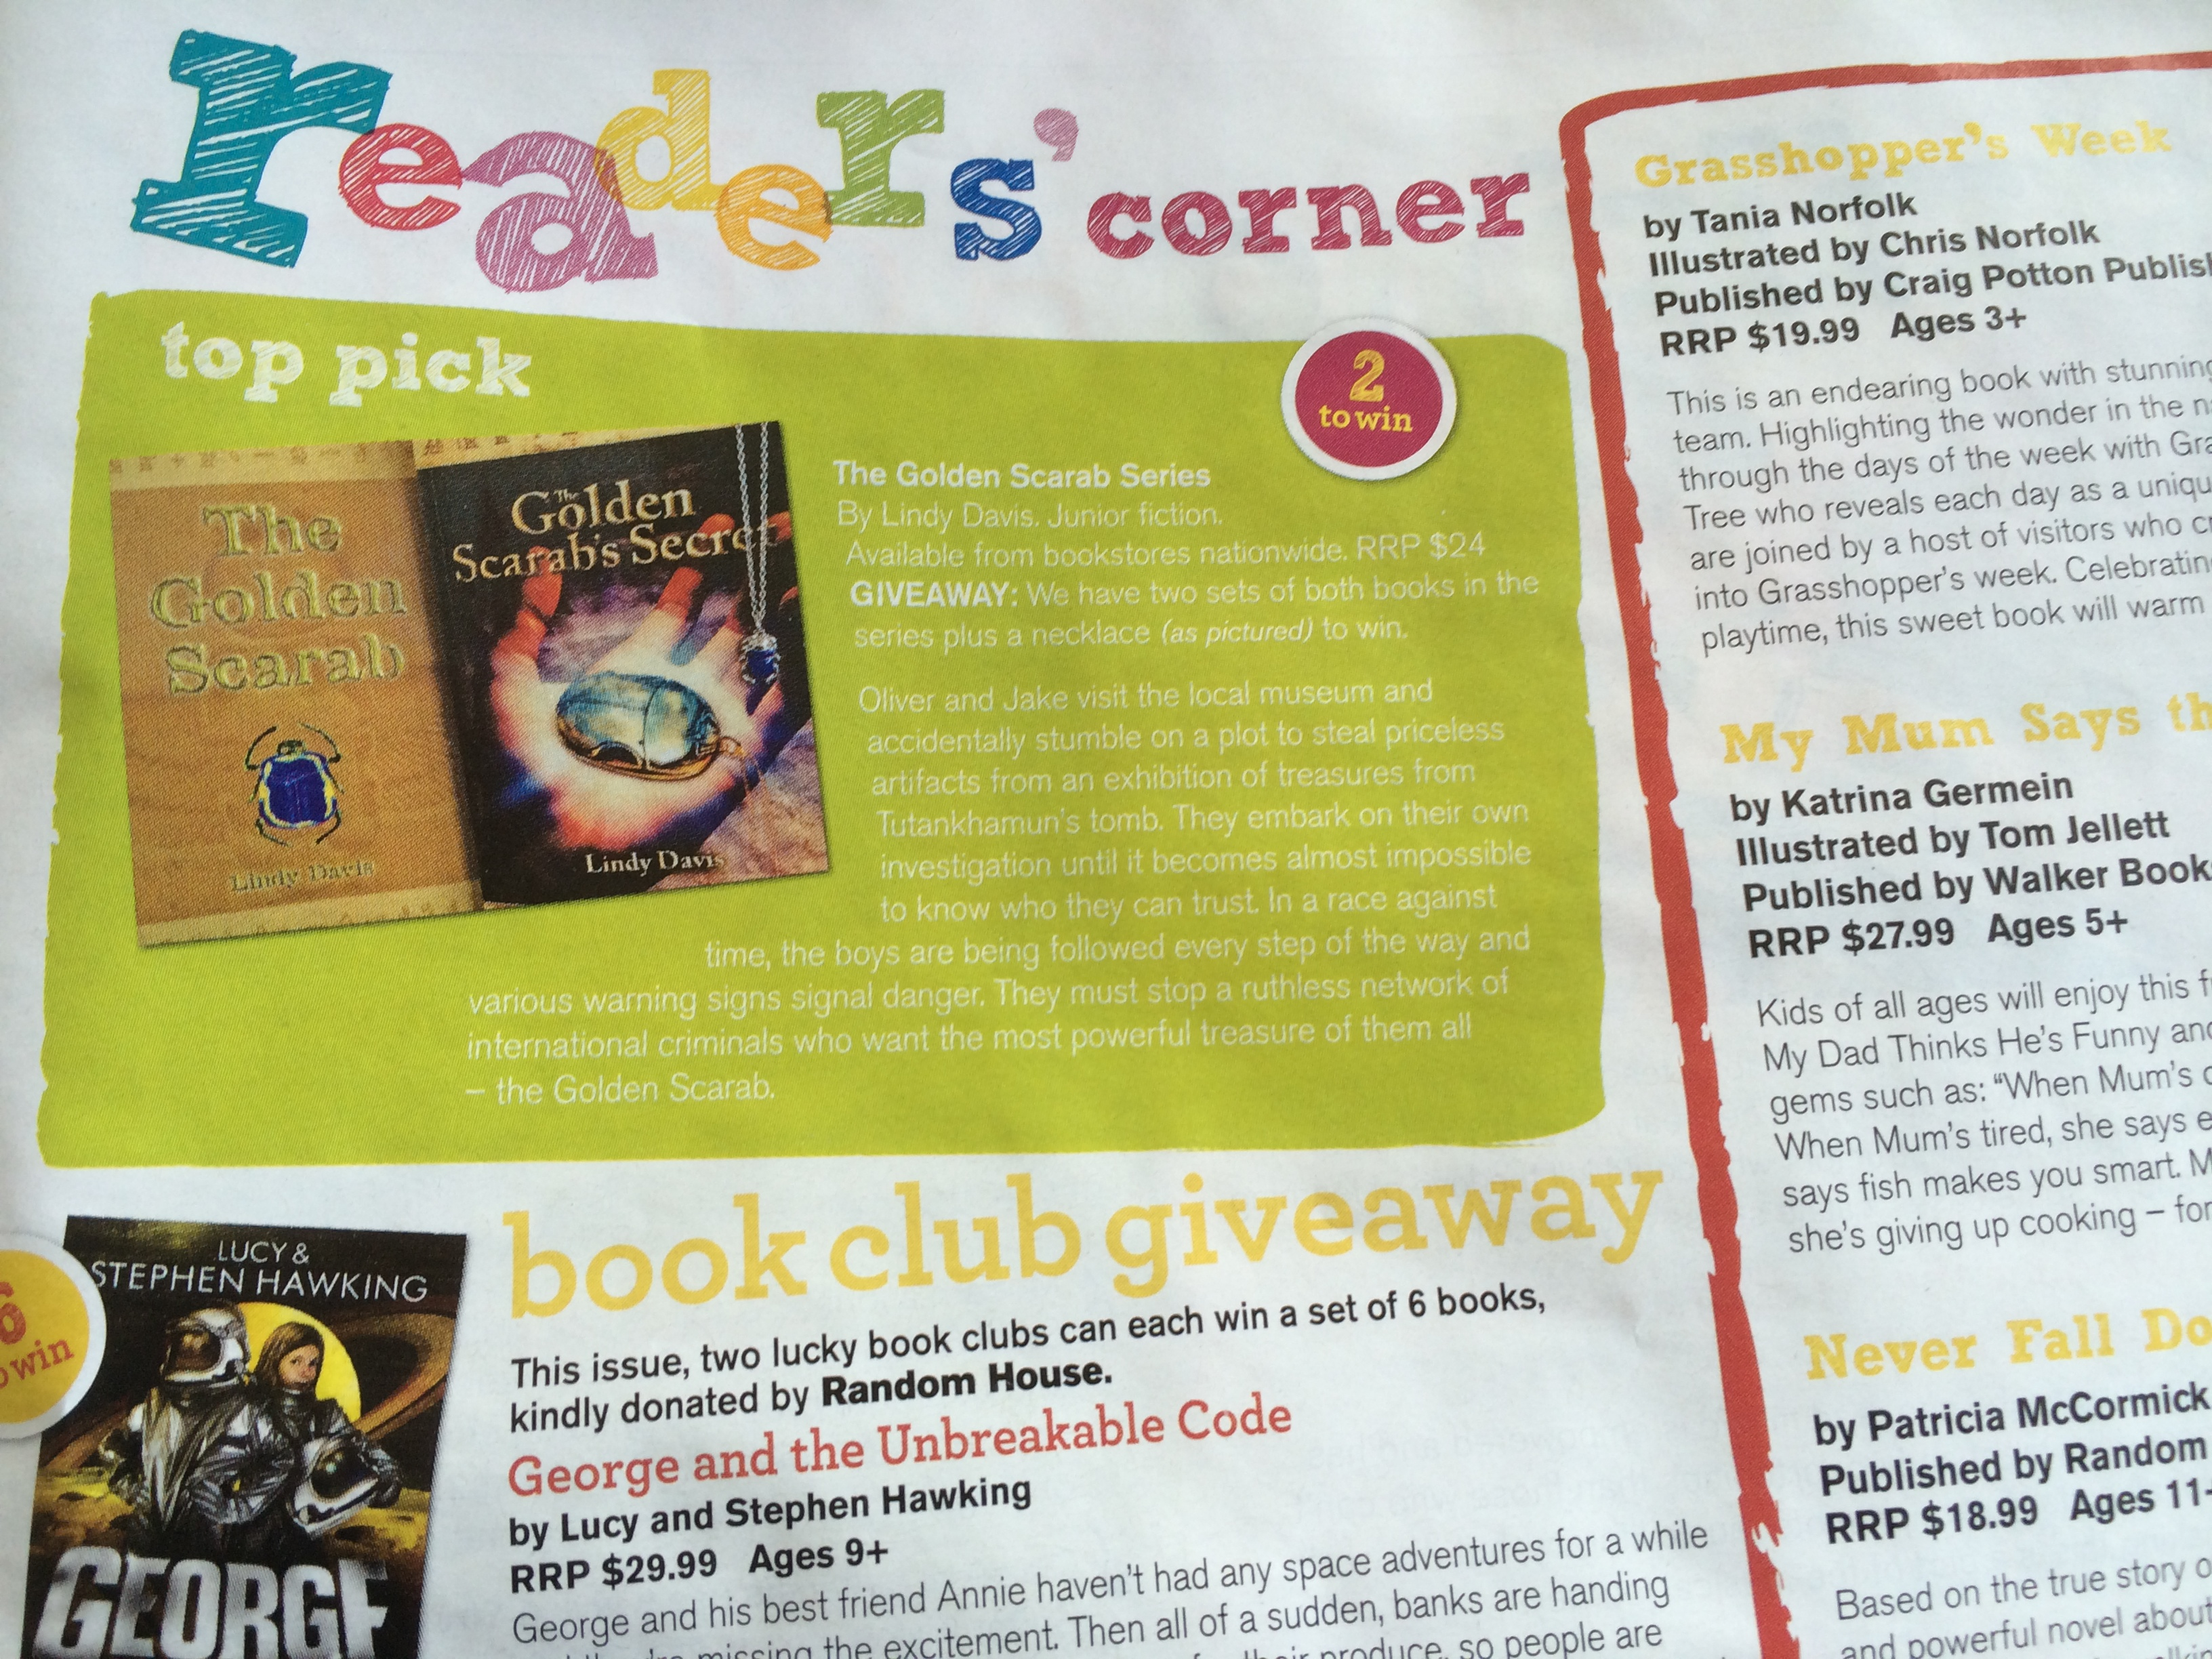 Top pick in Teens magazine